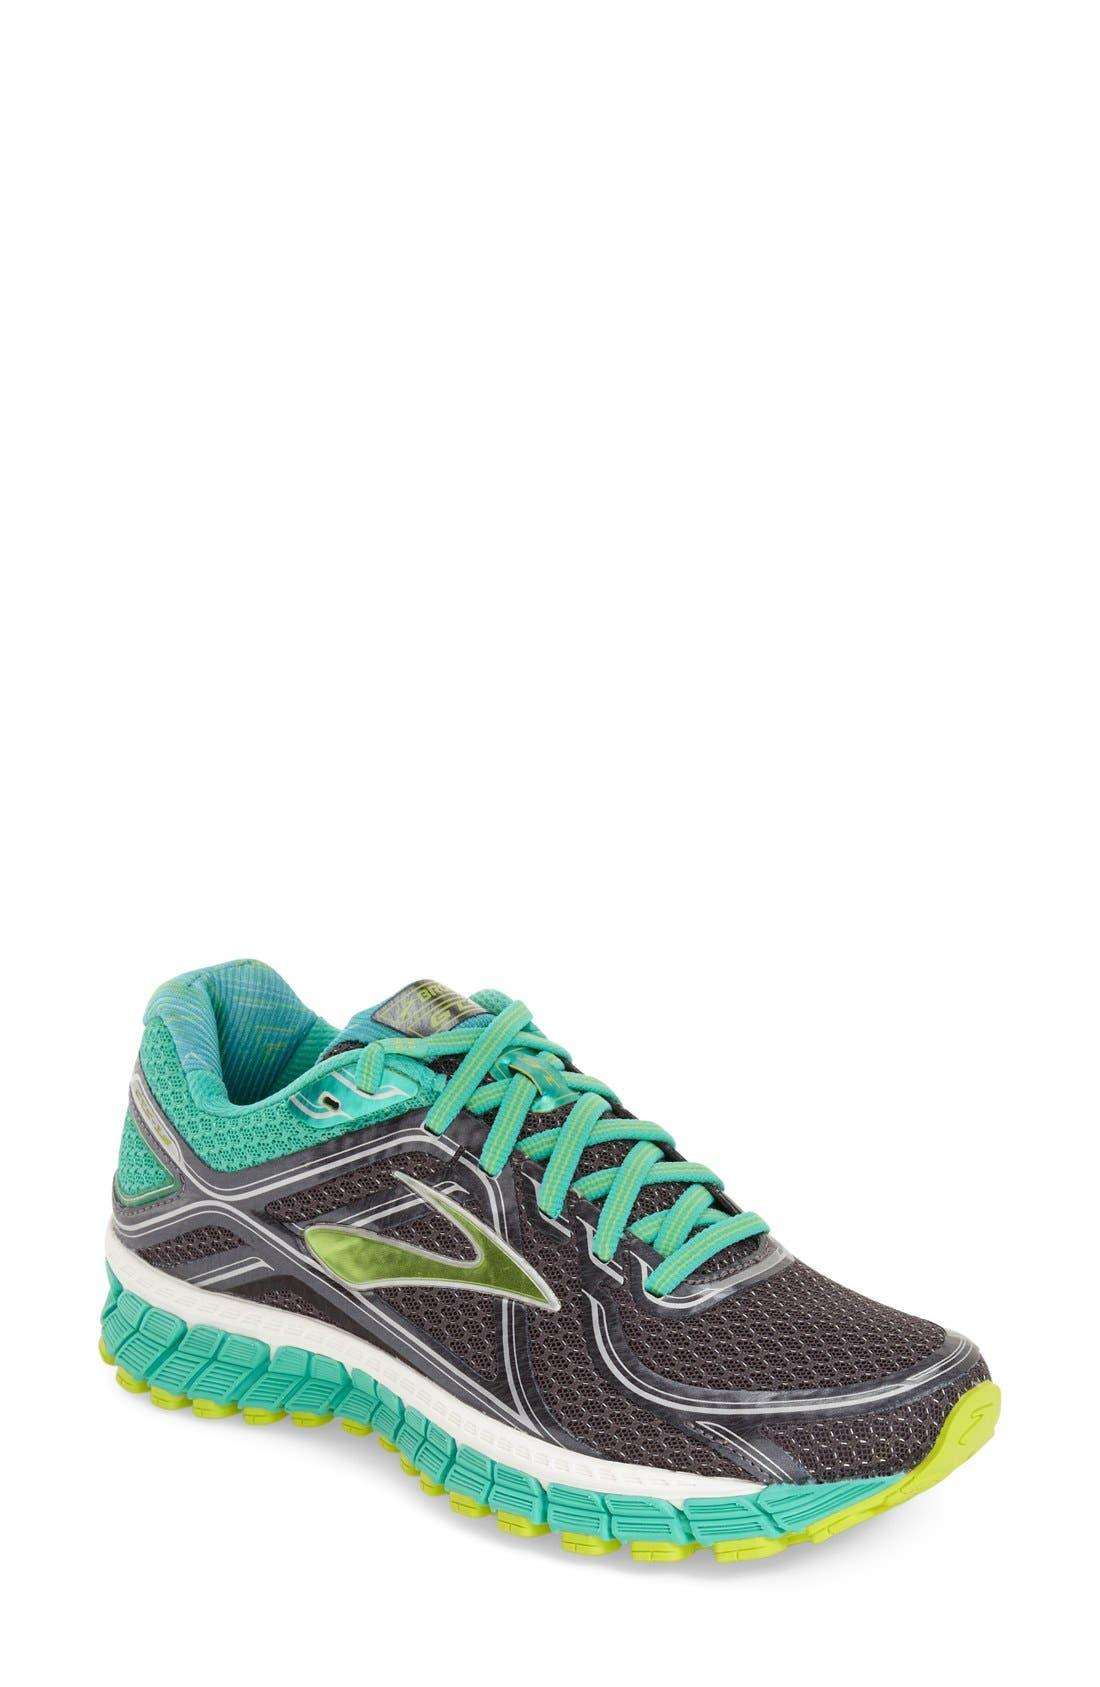 'Adrenaline GTS 16' Running Shoe, Main, color, 020